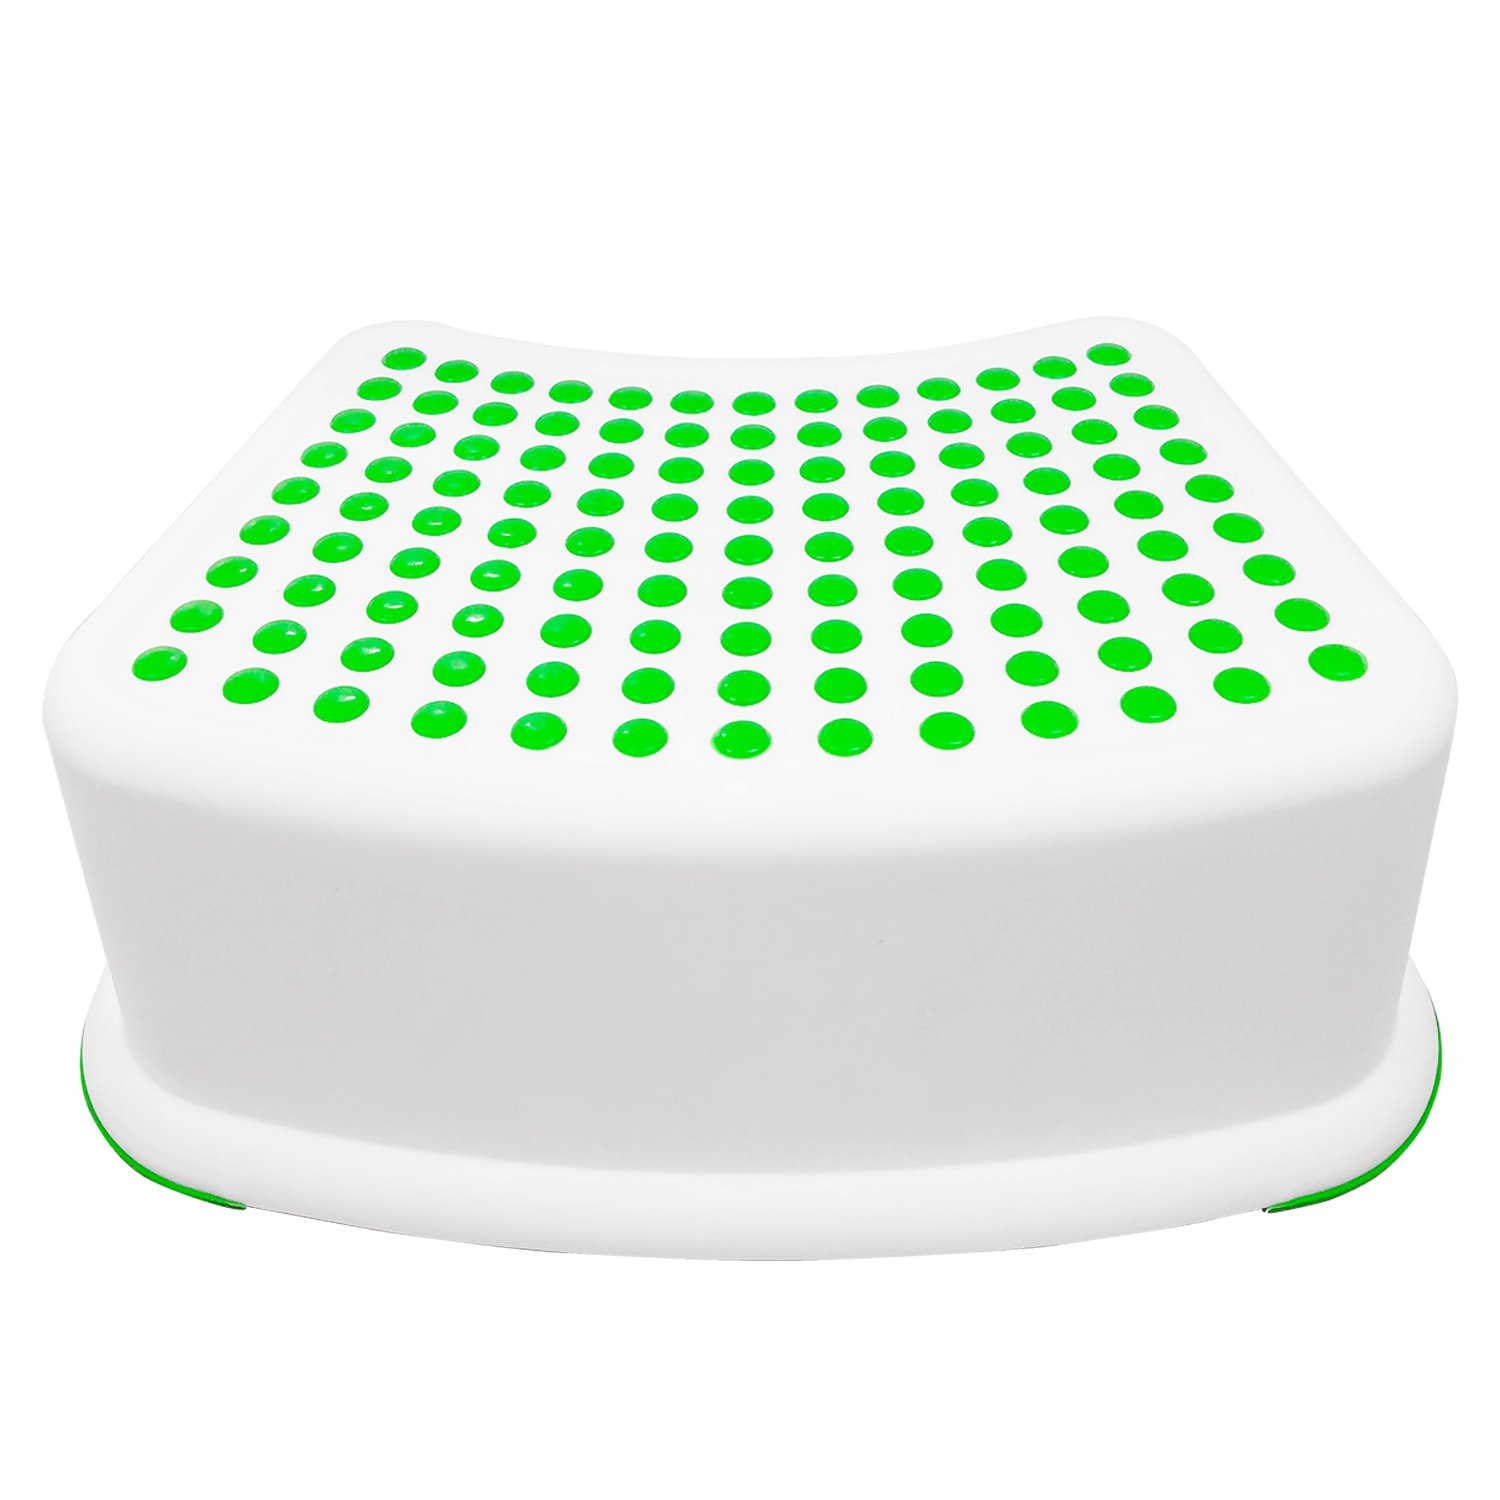 Kids Green Step Stool - Great For Potty Training, Bathroom, Bedroom, Toy Room, Kitchen, and Living Room. Perfect For Your House SYNCHKG103623